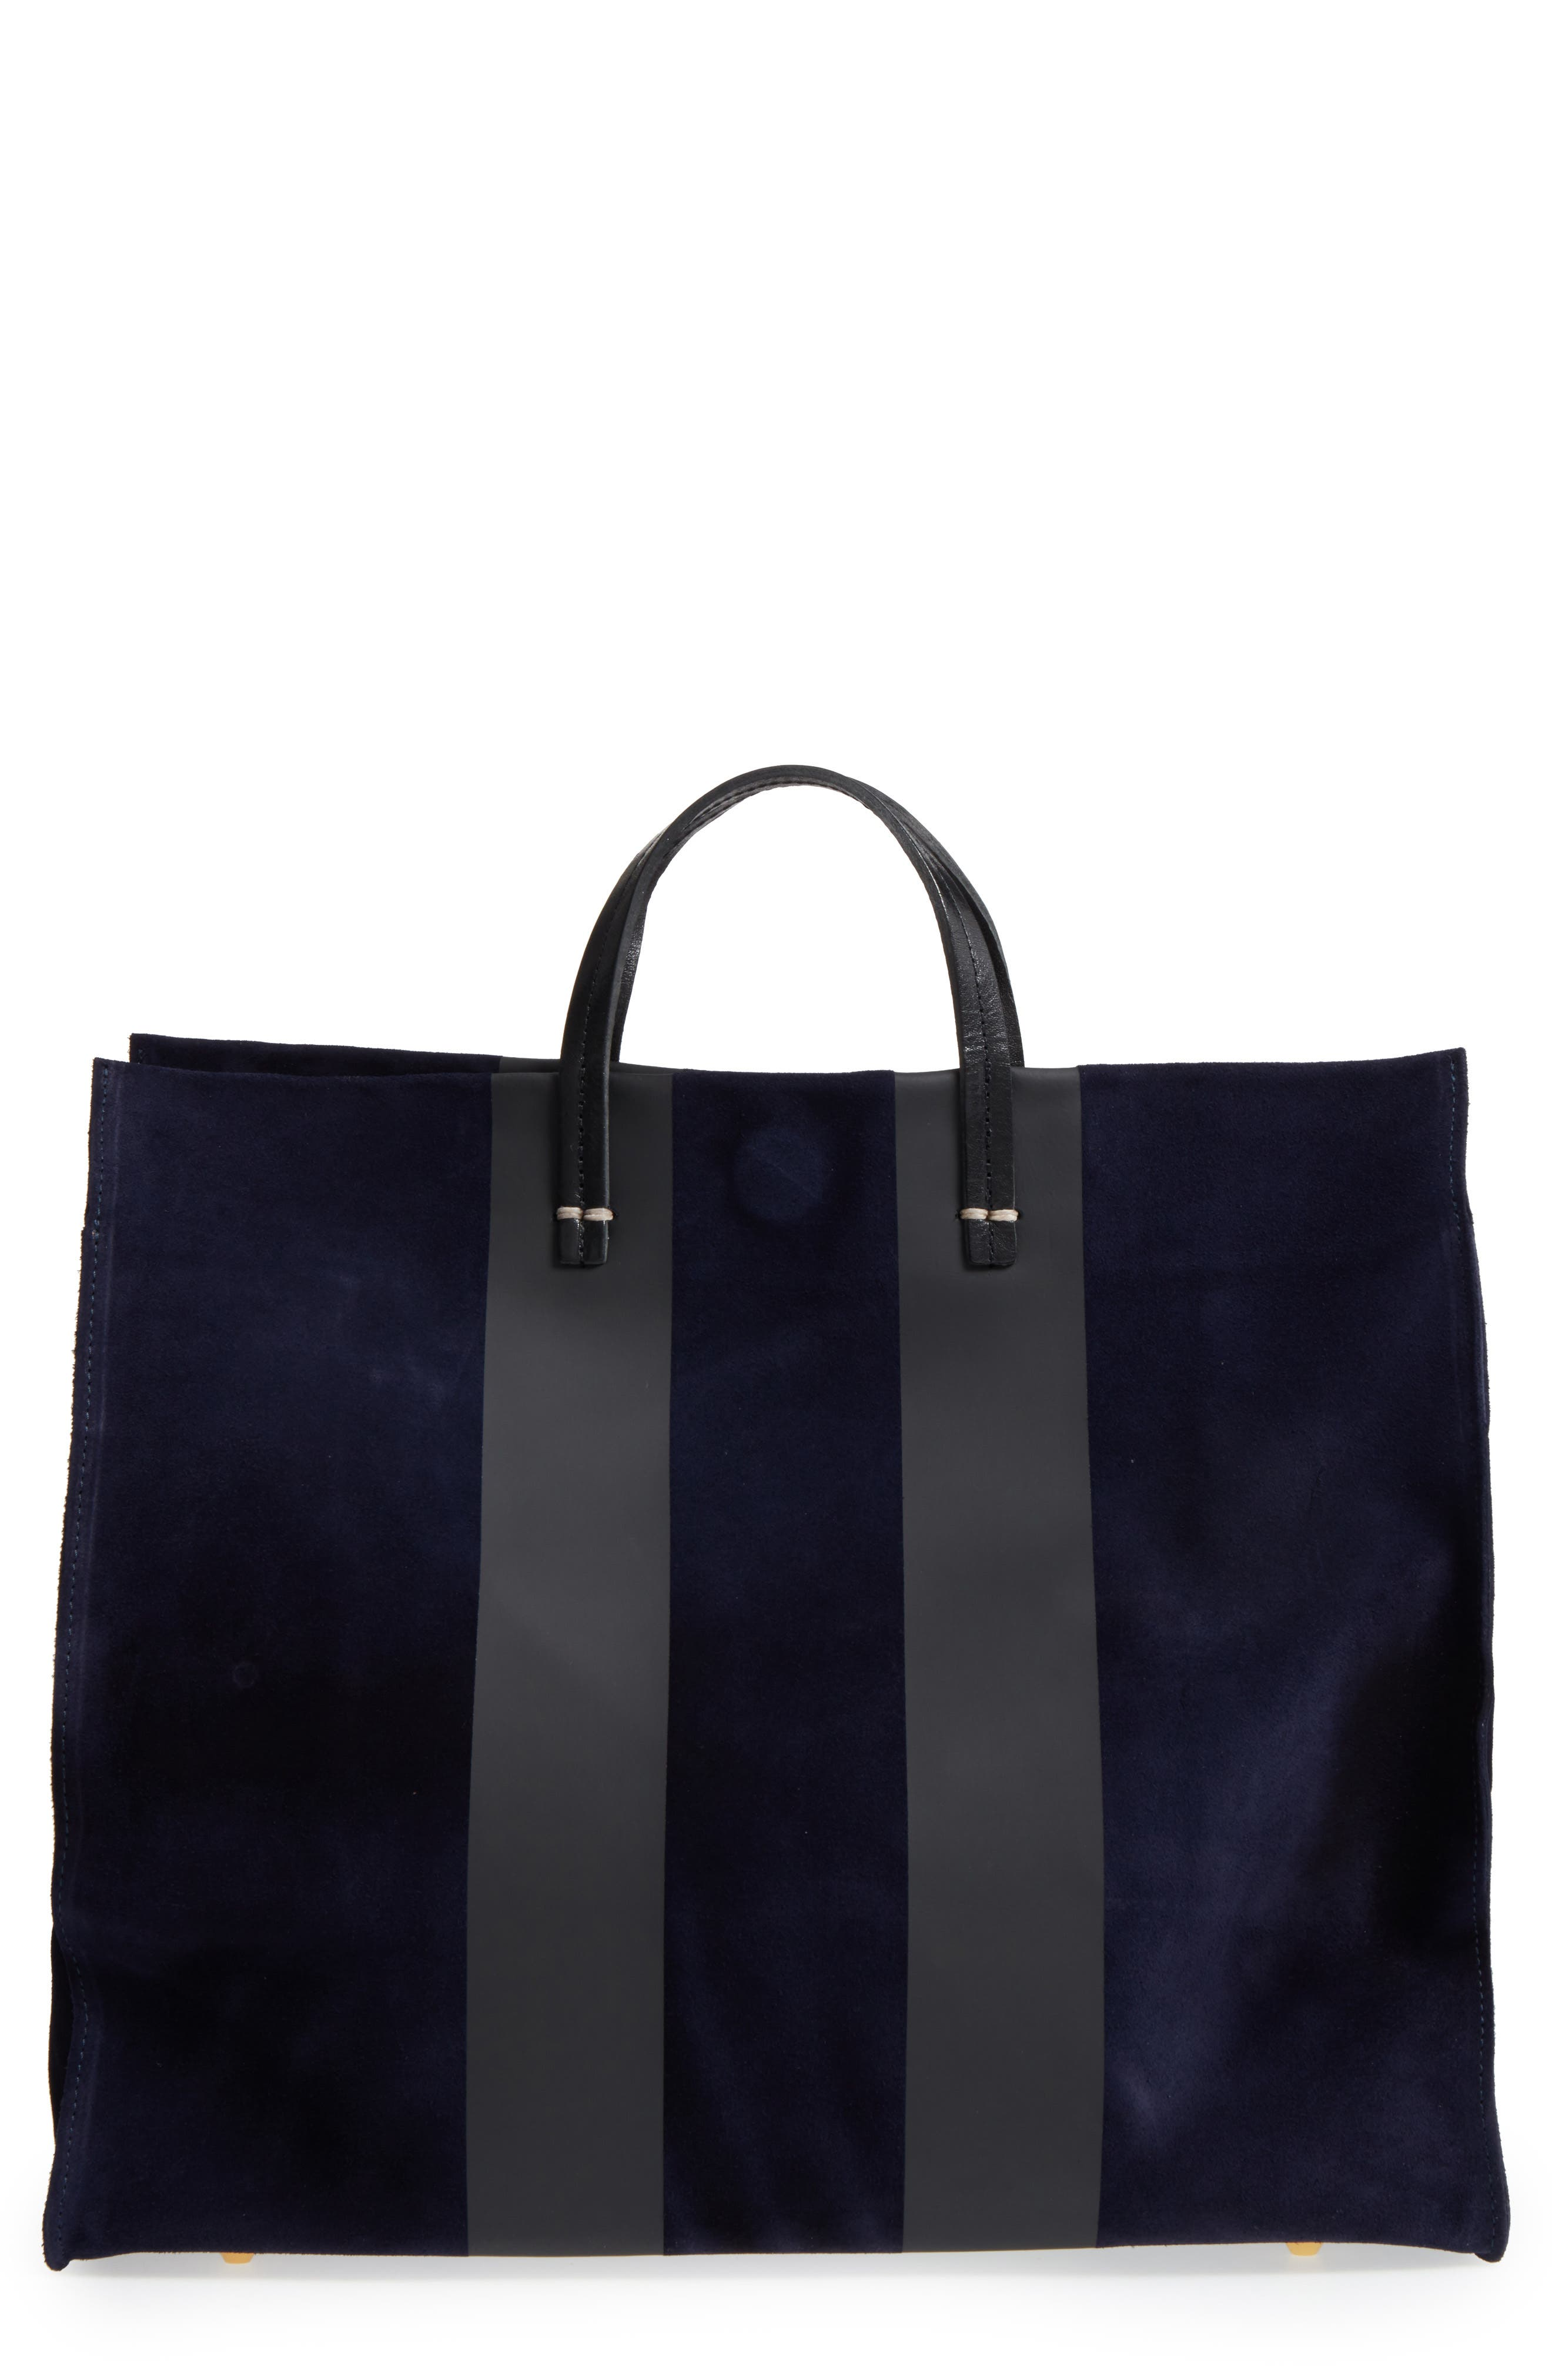 Main Image - Clare V. Simple Leather Tote